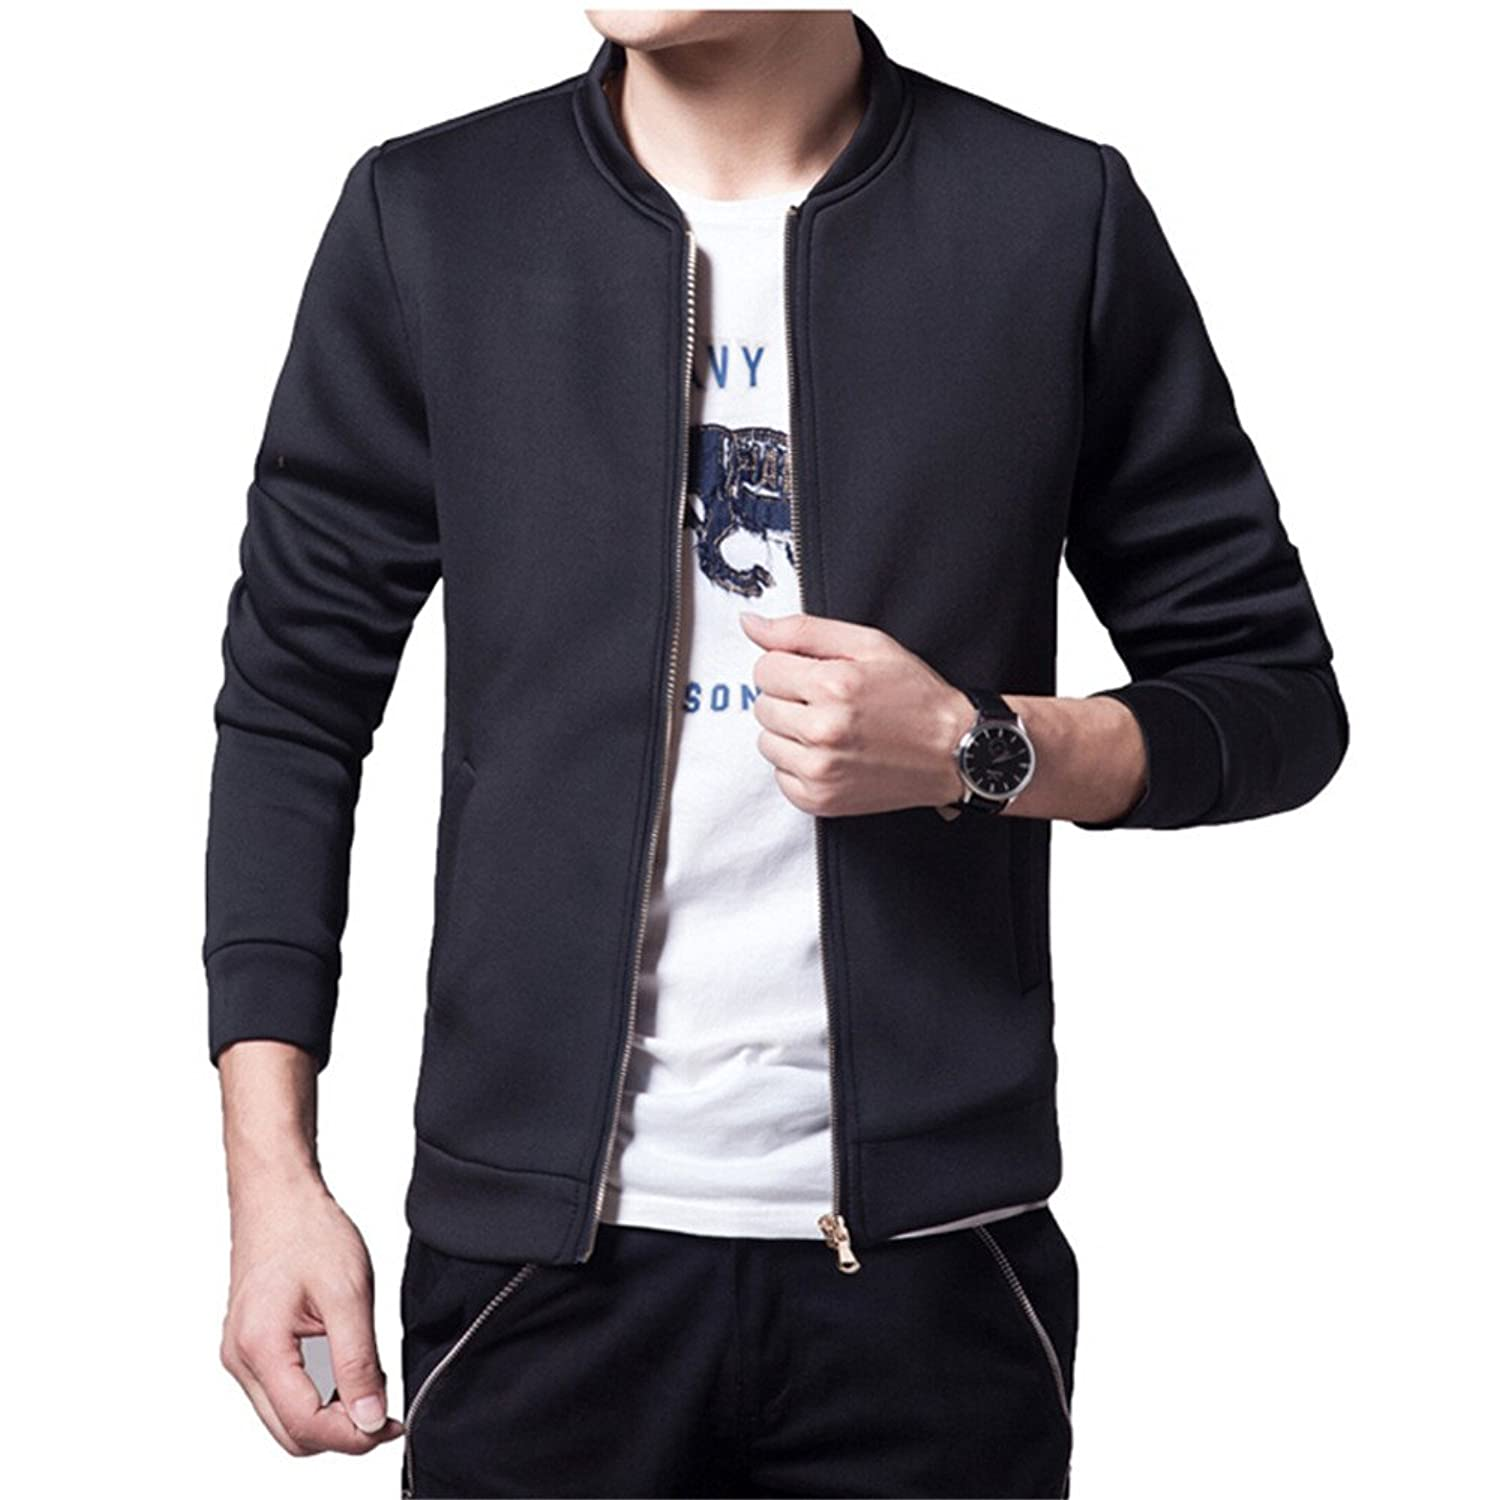 Ohaiquza Fleece-Outerwear-jacketsLeisure Solid Slim Memory Foam Spring Male Overcoats Chaqueta at Amazon Mens Clothing store: